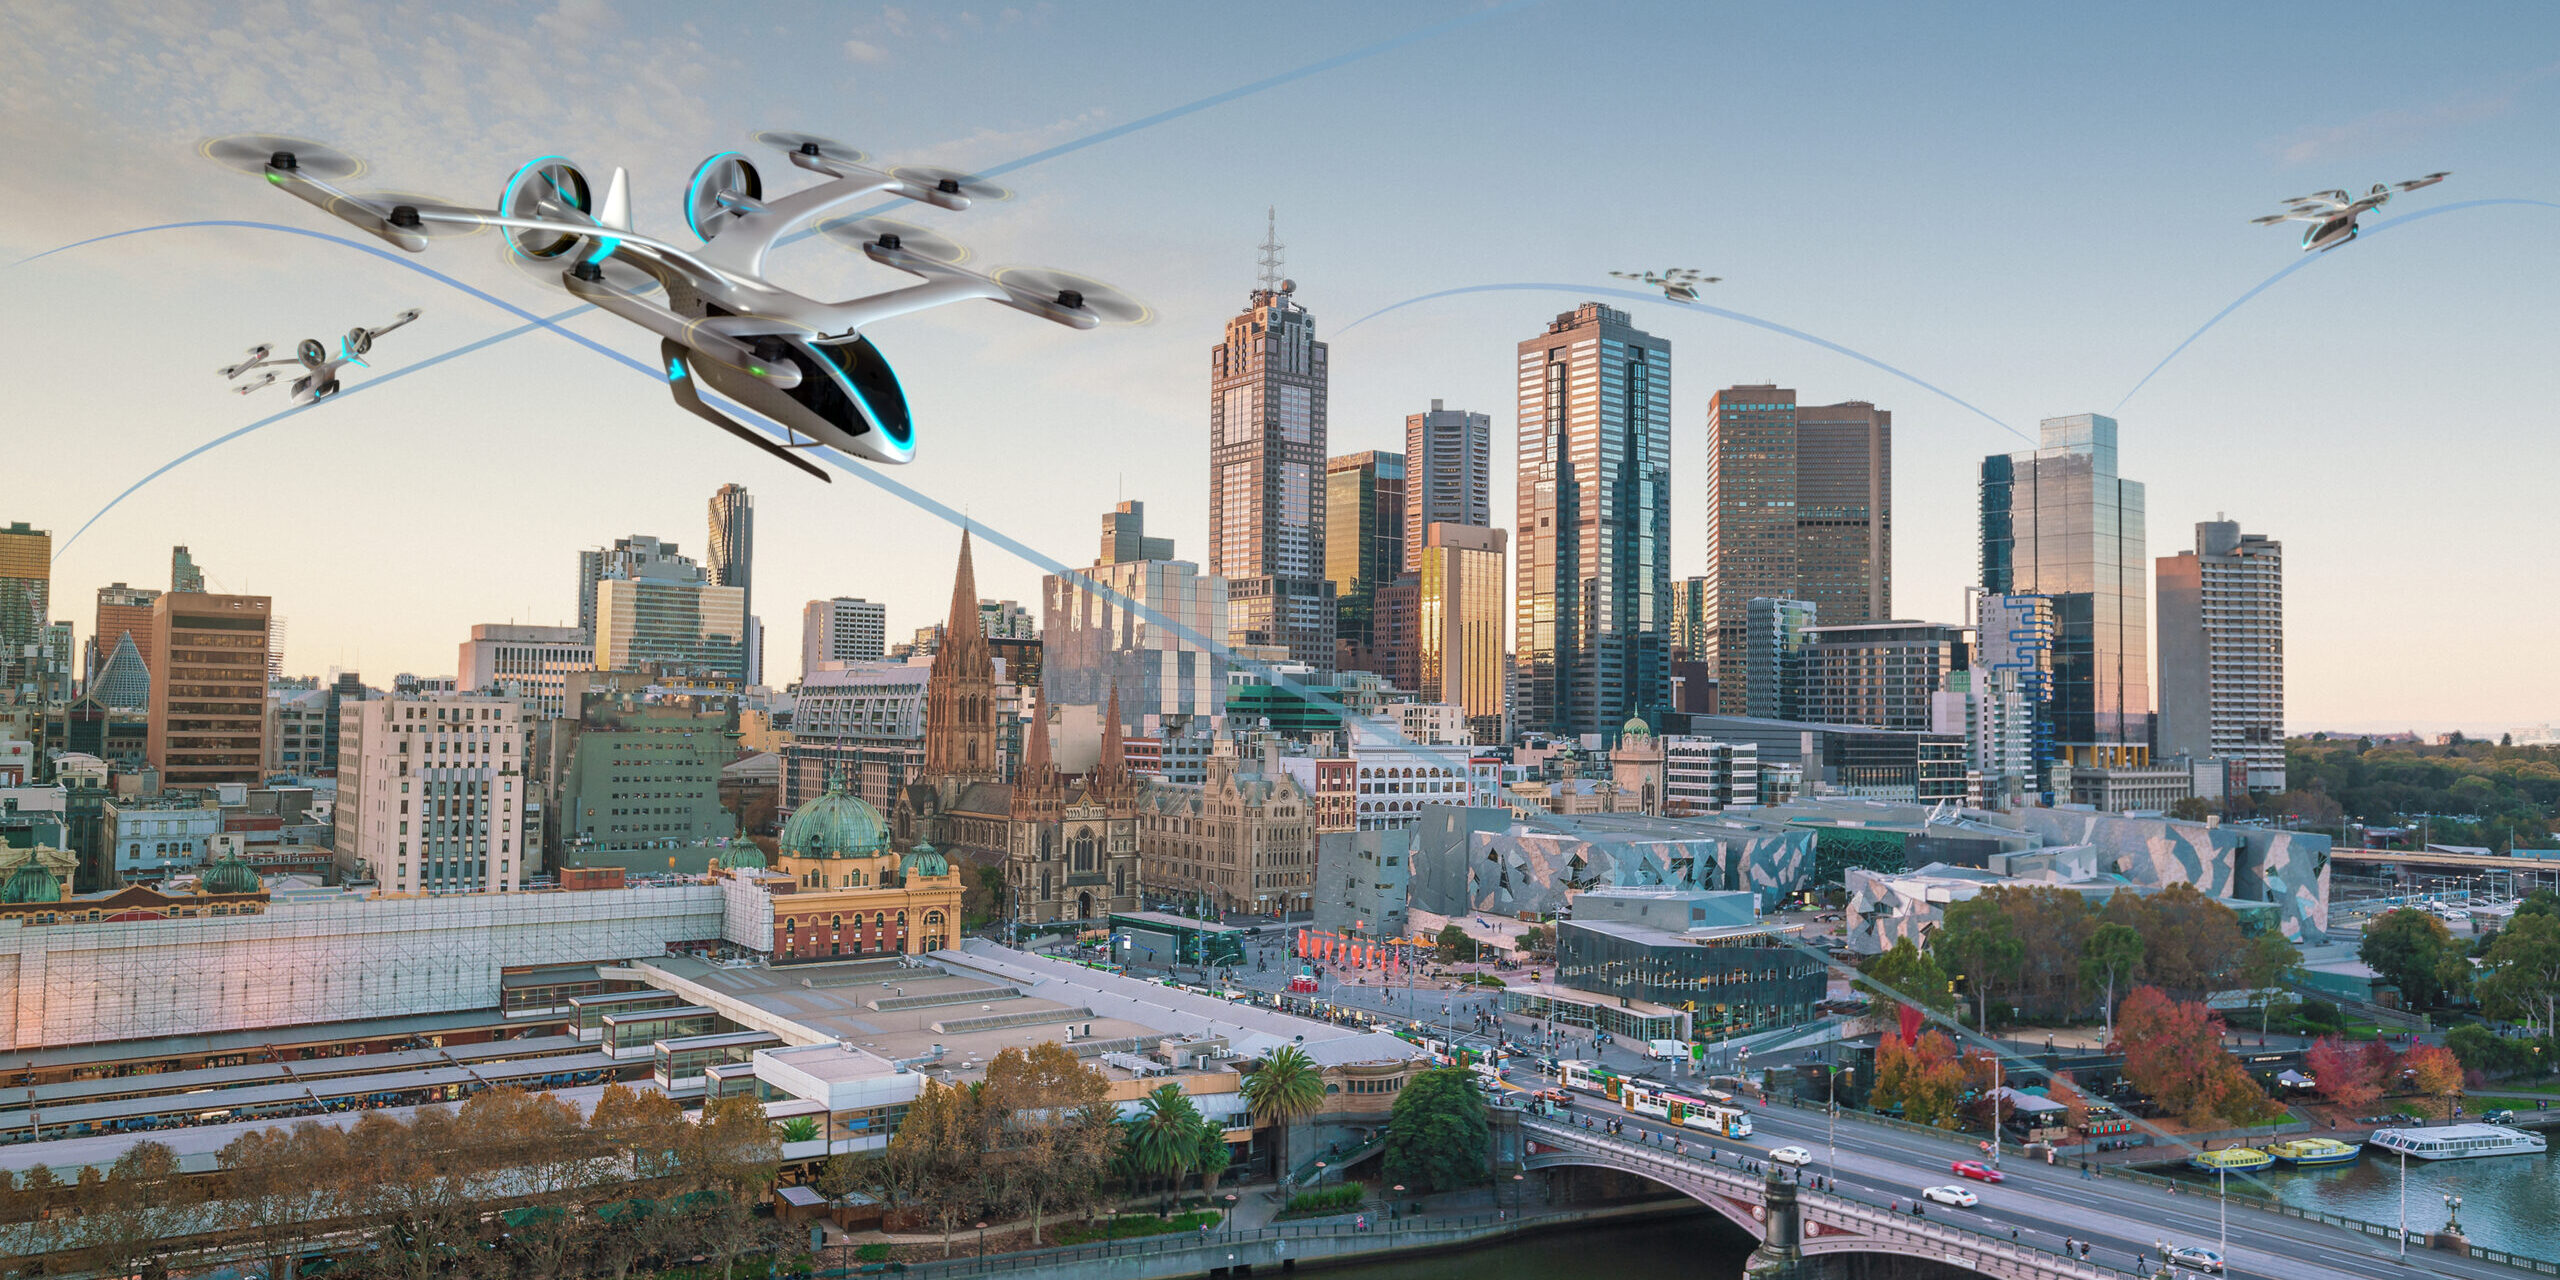 Urban Sky with Drones in Melbourne